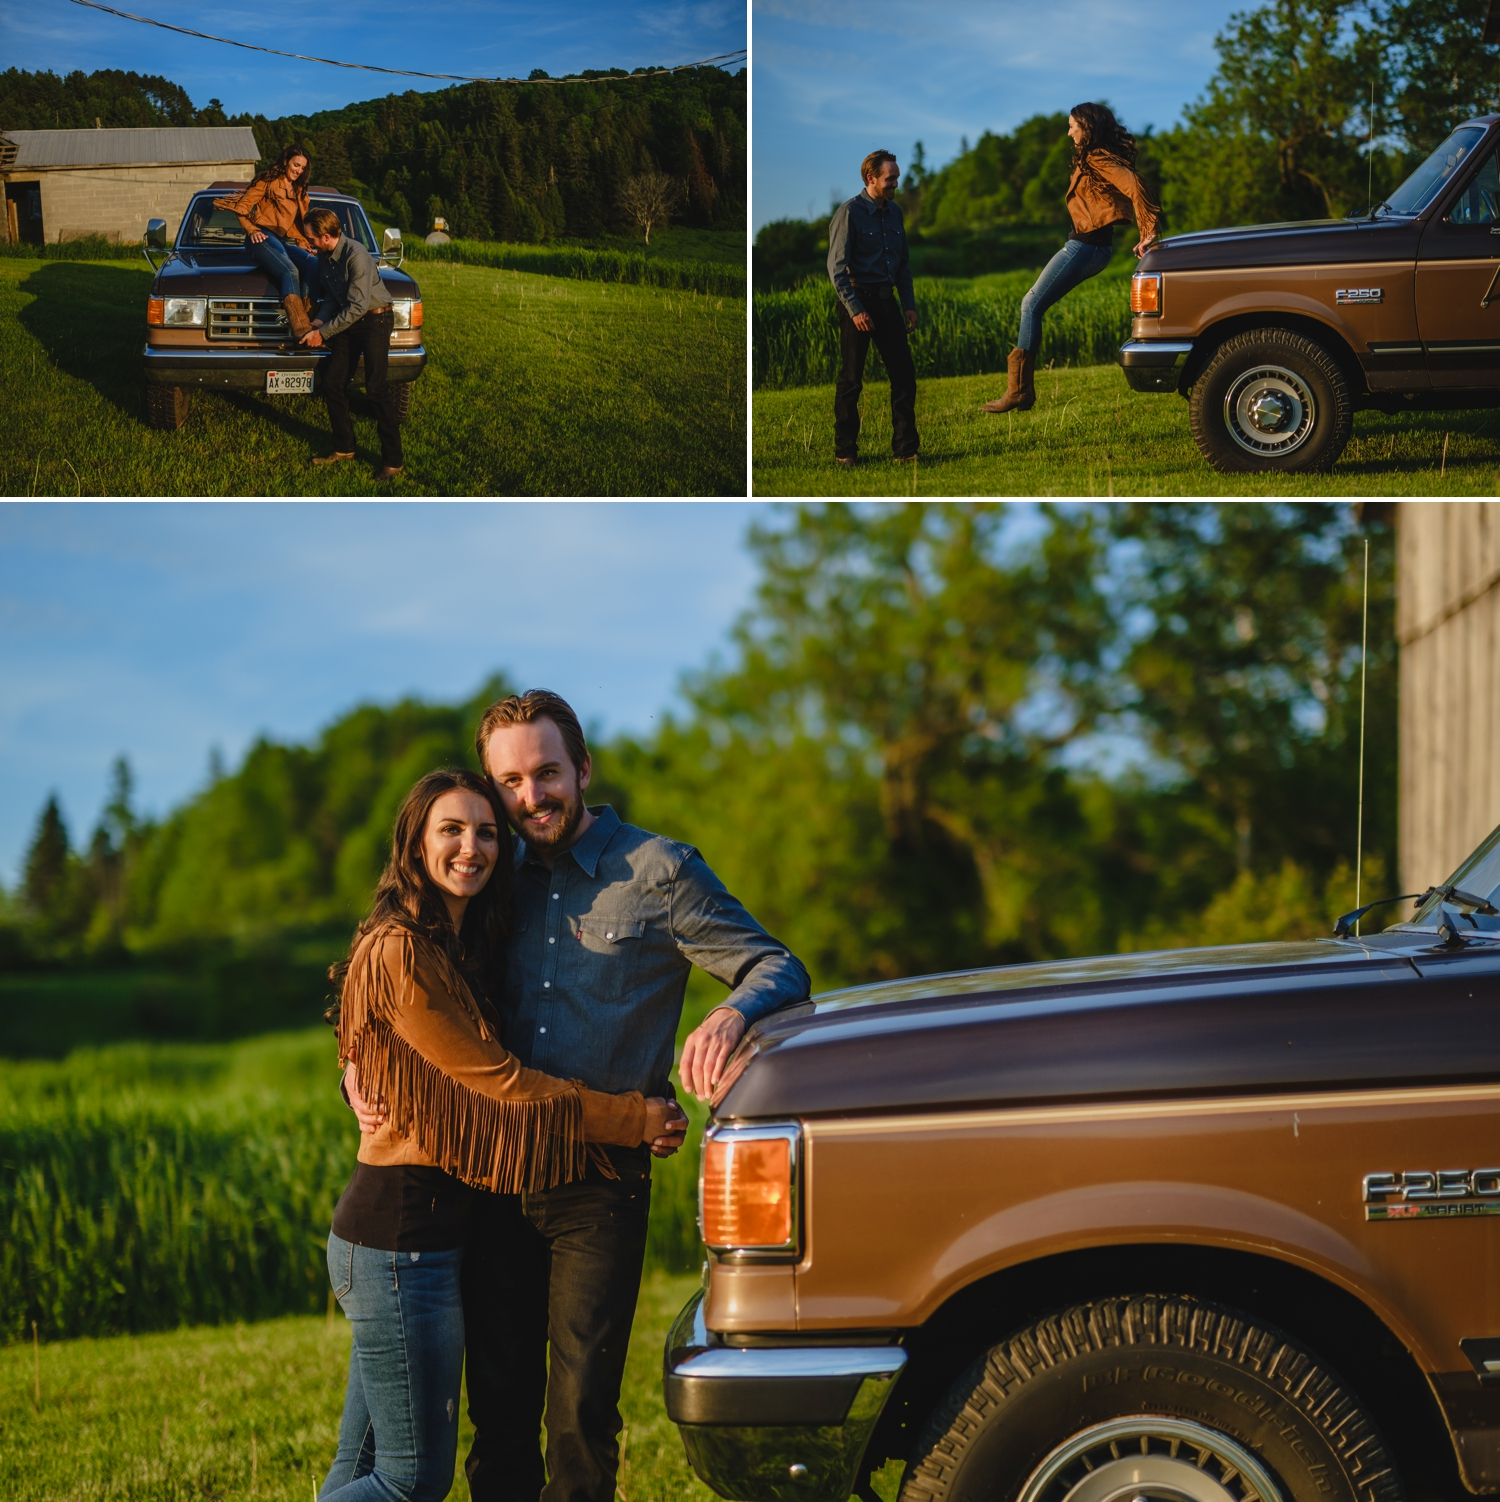 engaged couple posing for photographs in front of a vintage ford f150 truck